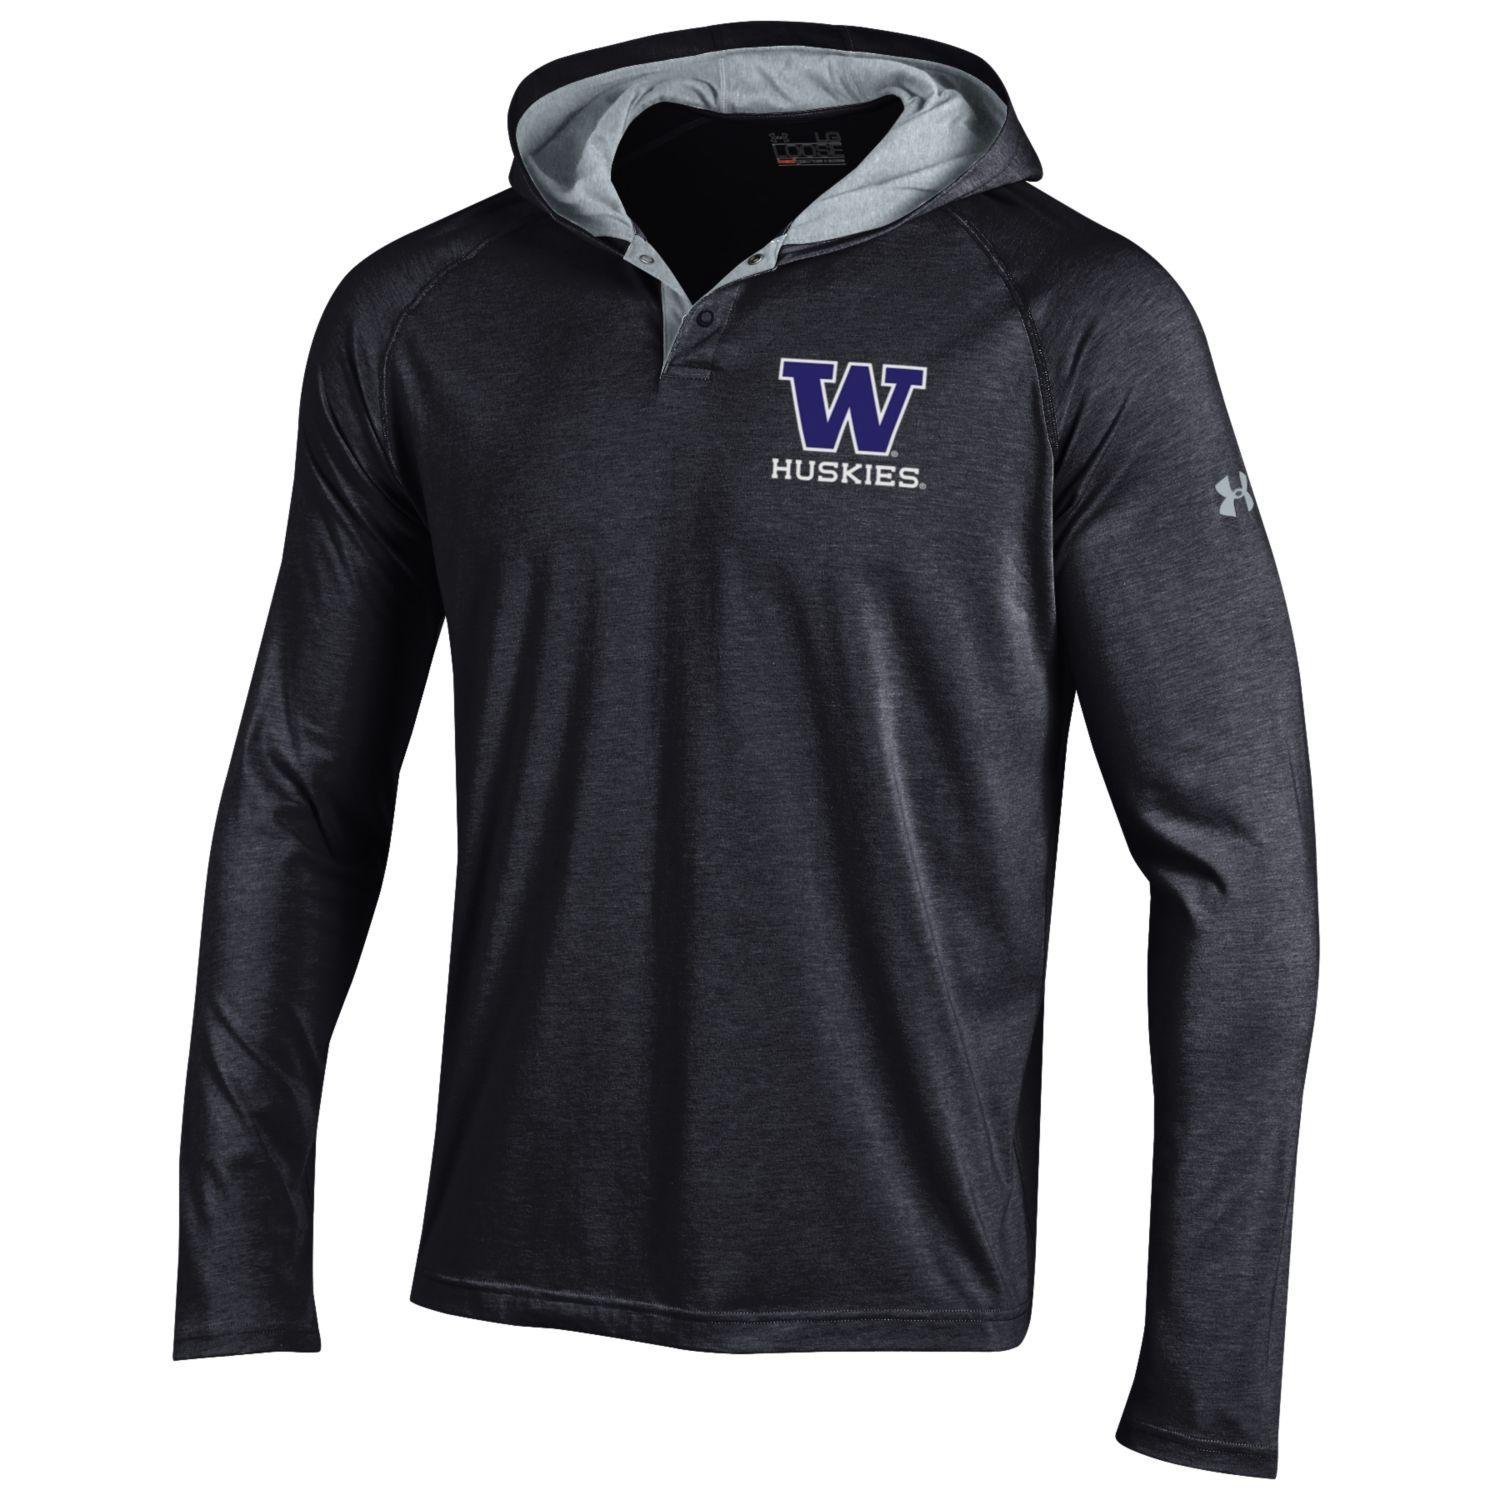 Under Armour Herren NCAA Charged Cotton Hooded Henley Tee